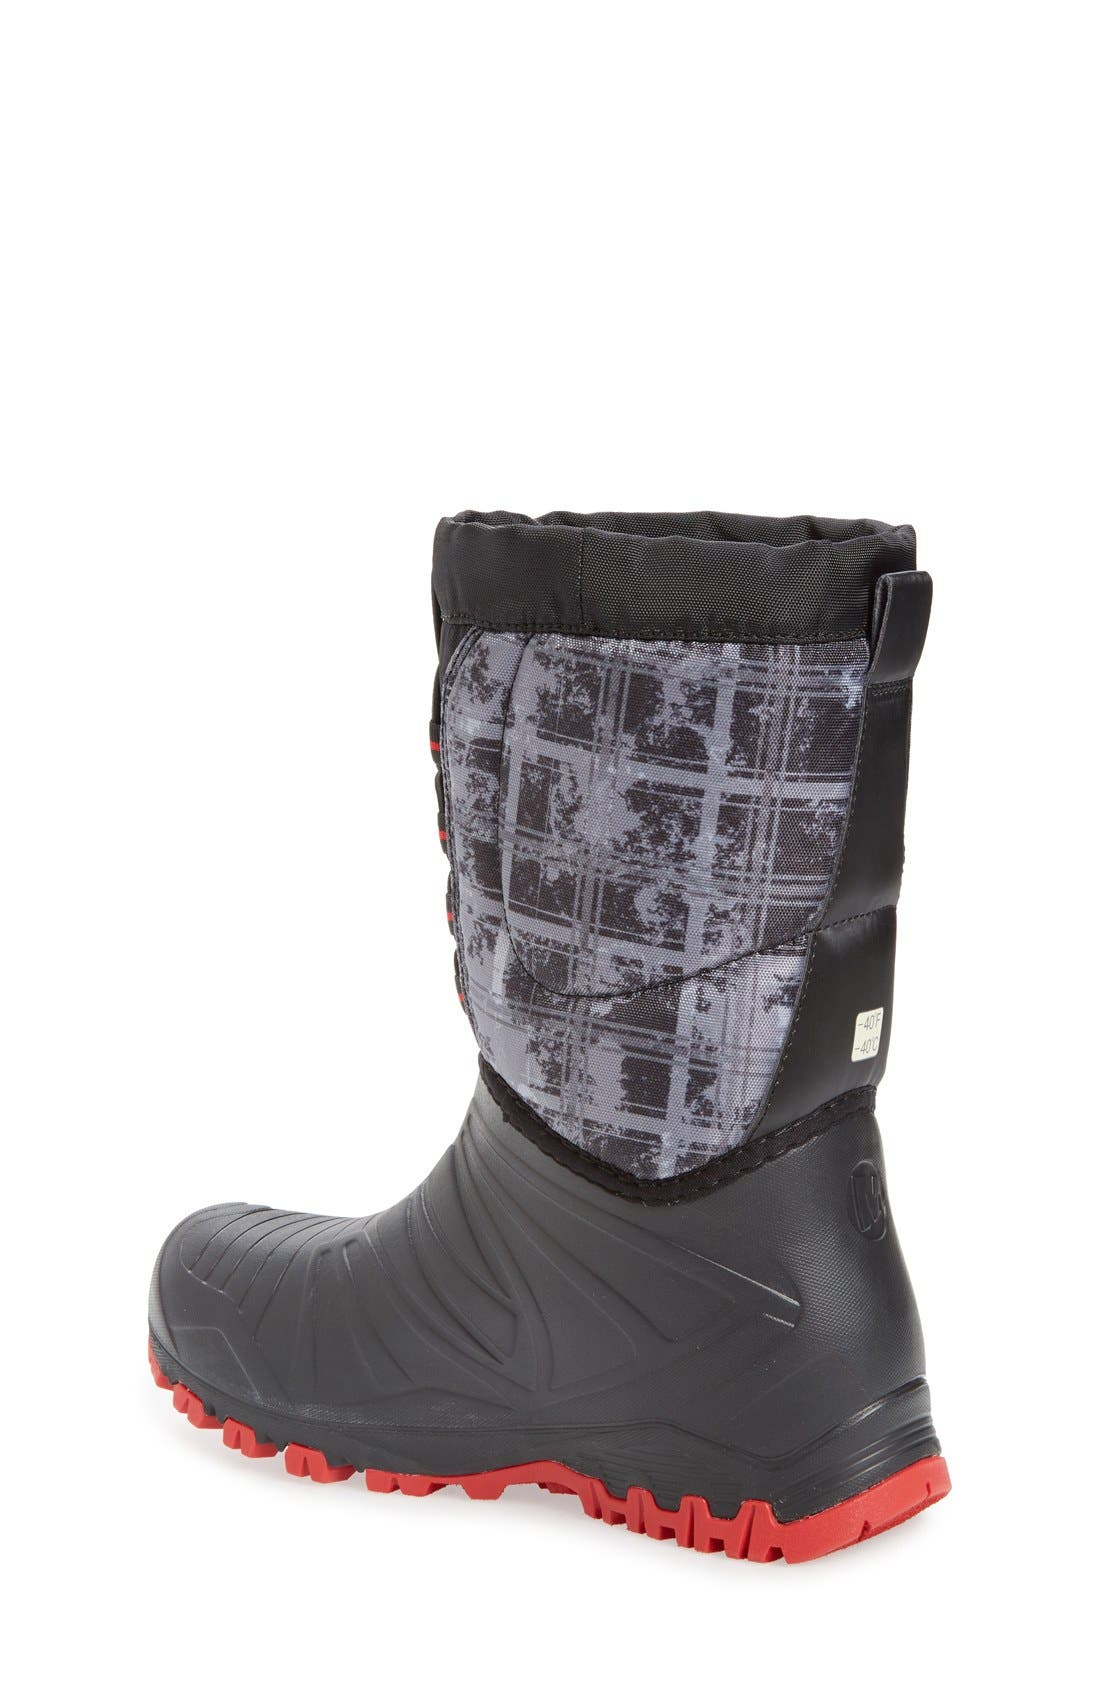 'Snow Quest' Waterproof Boot,                             Alternate thumbnail 2, color,                             001